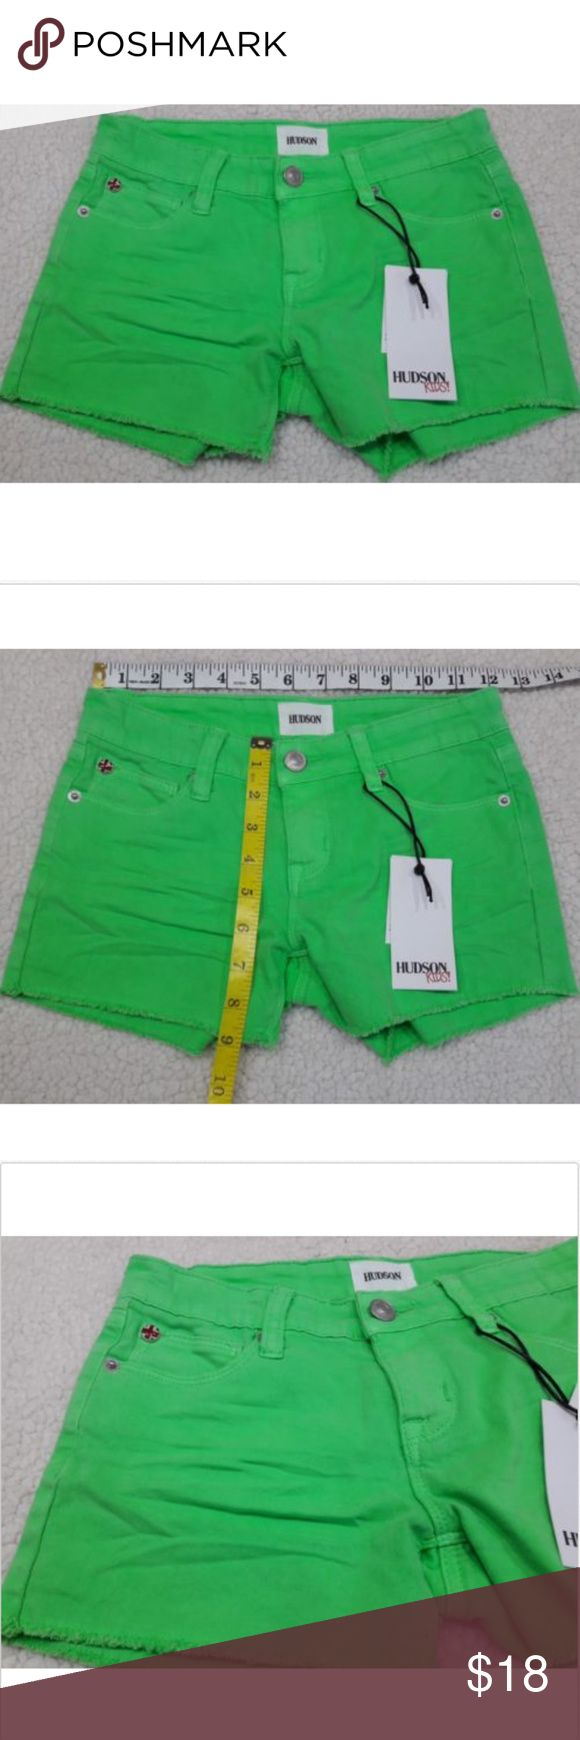 Hudson Kids Neon Green Shorts Size 10 NWT Hudson Kids Neon Green Shorts Size 10 NWT Hudson Jeans Bottoms Shorts